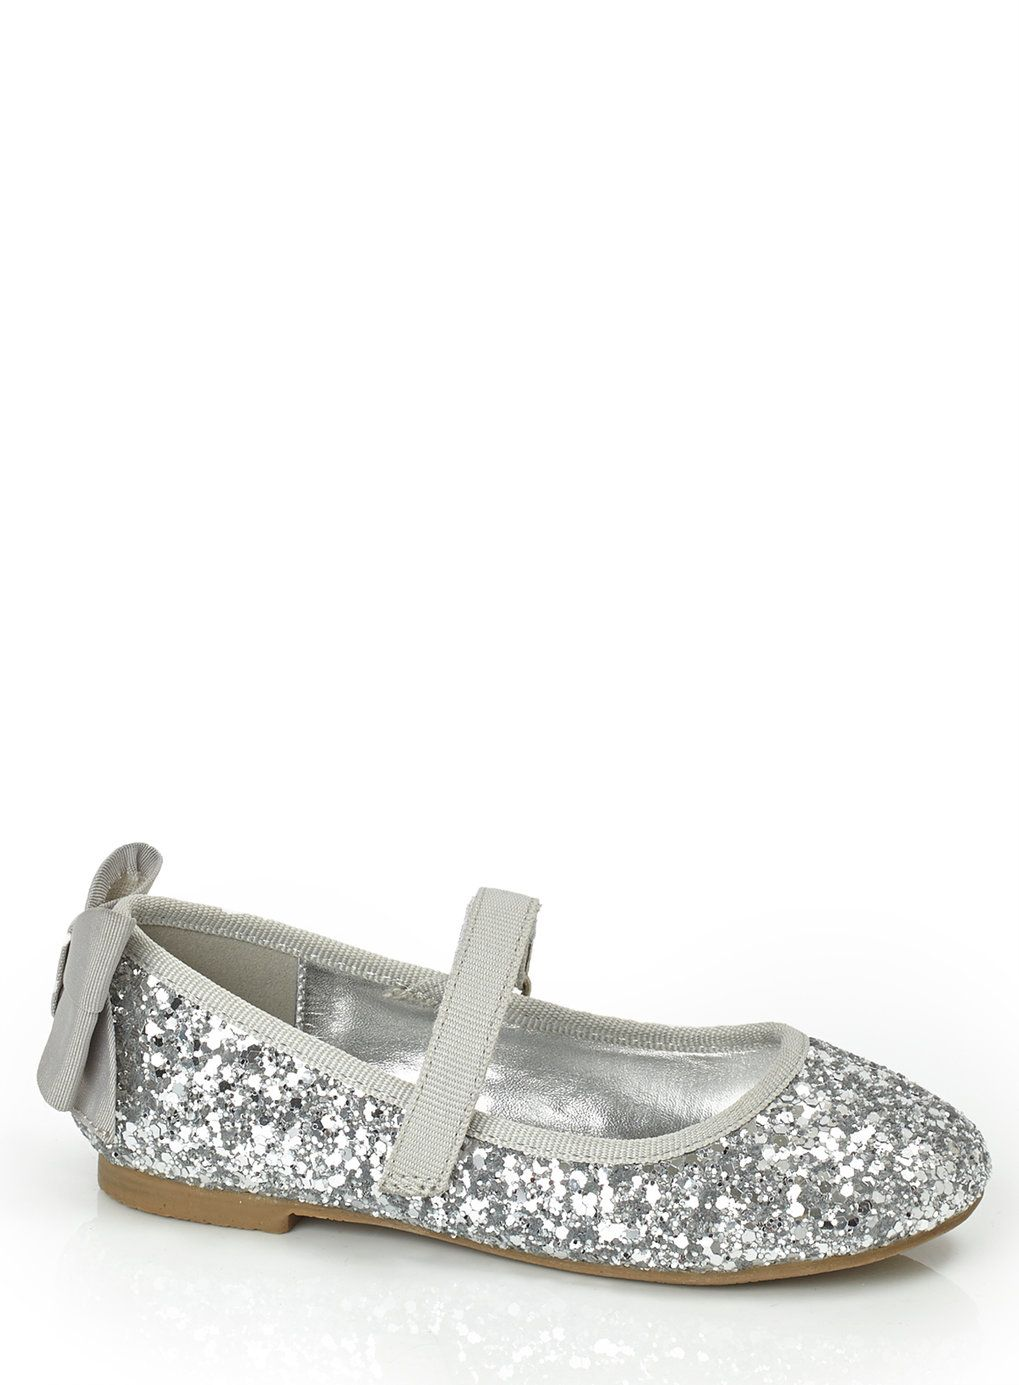 products image silver shoes sandals for llc girls liberty lark studded